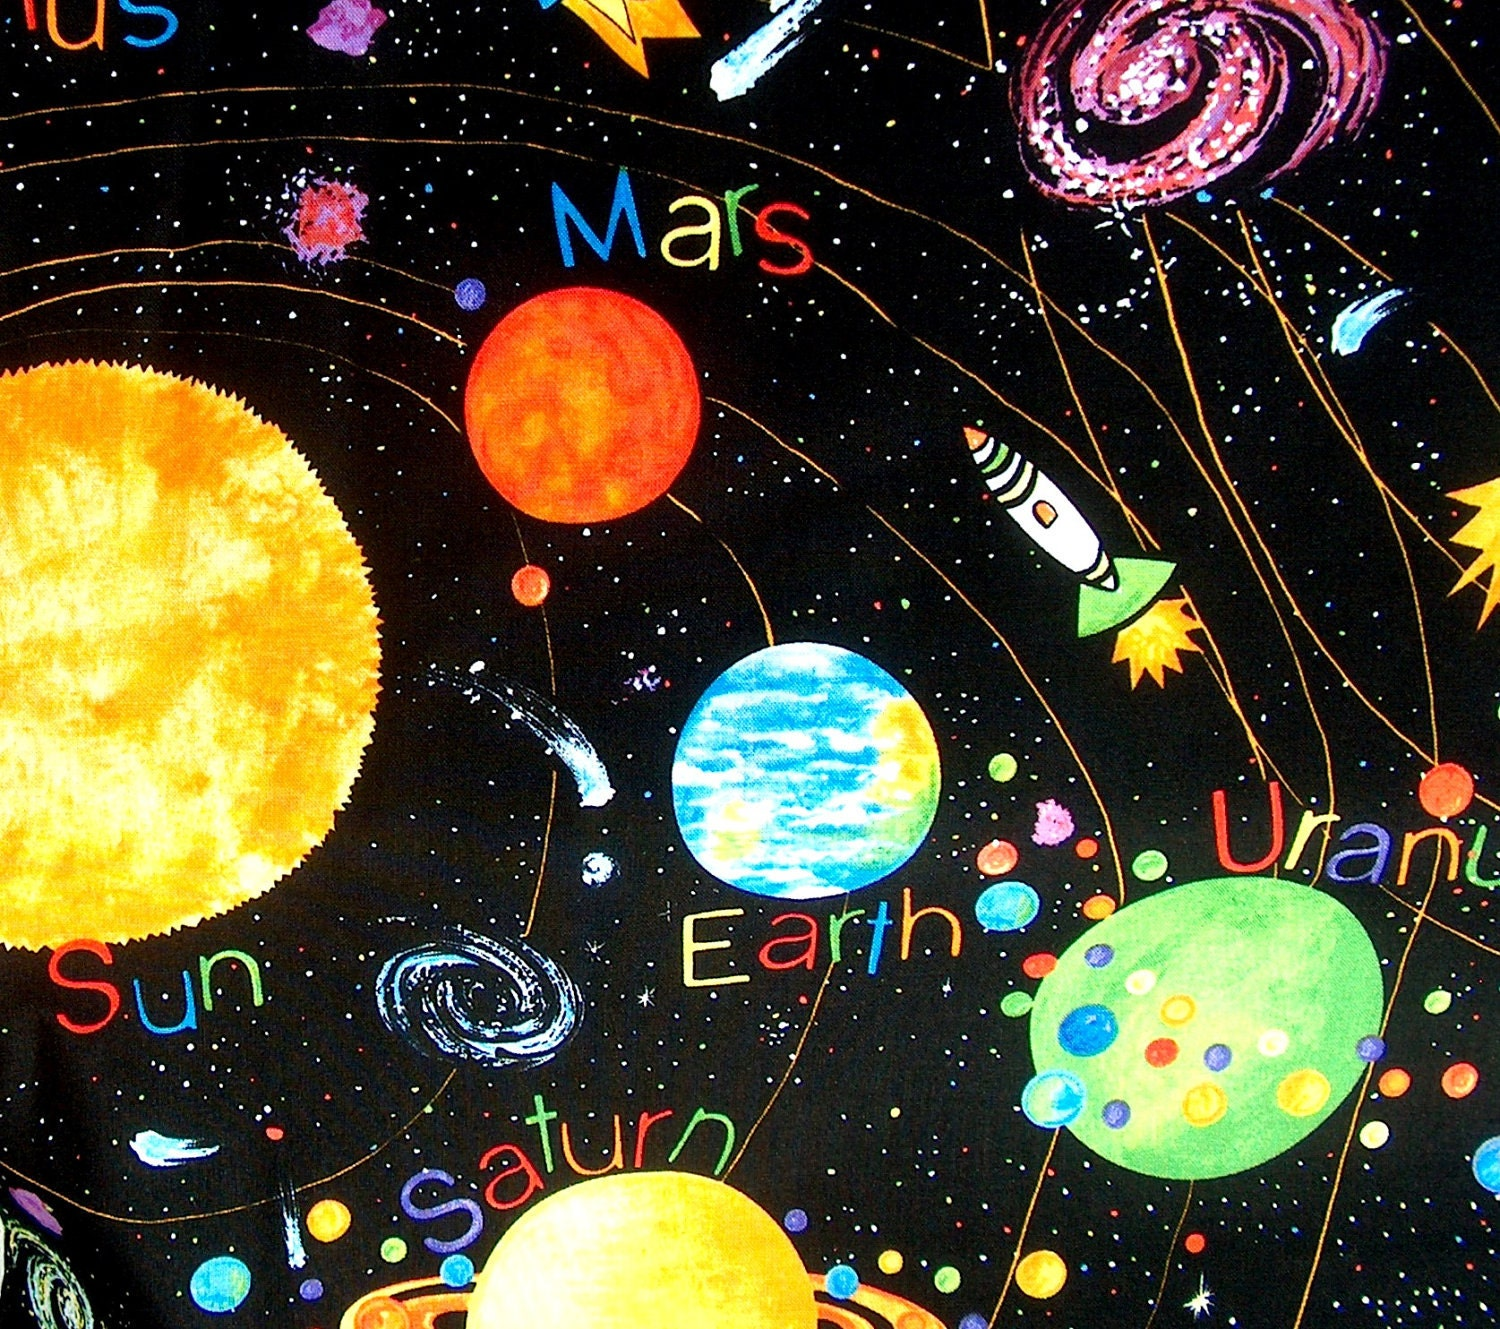 Solar system fabric with bright planets on a black backgound for Fabric planets solar system